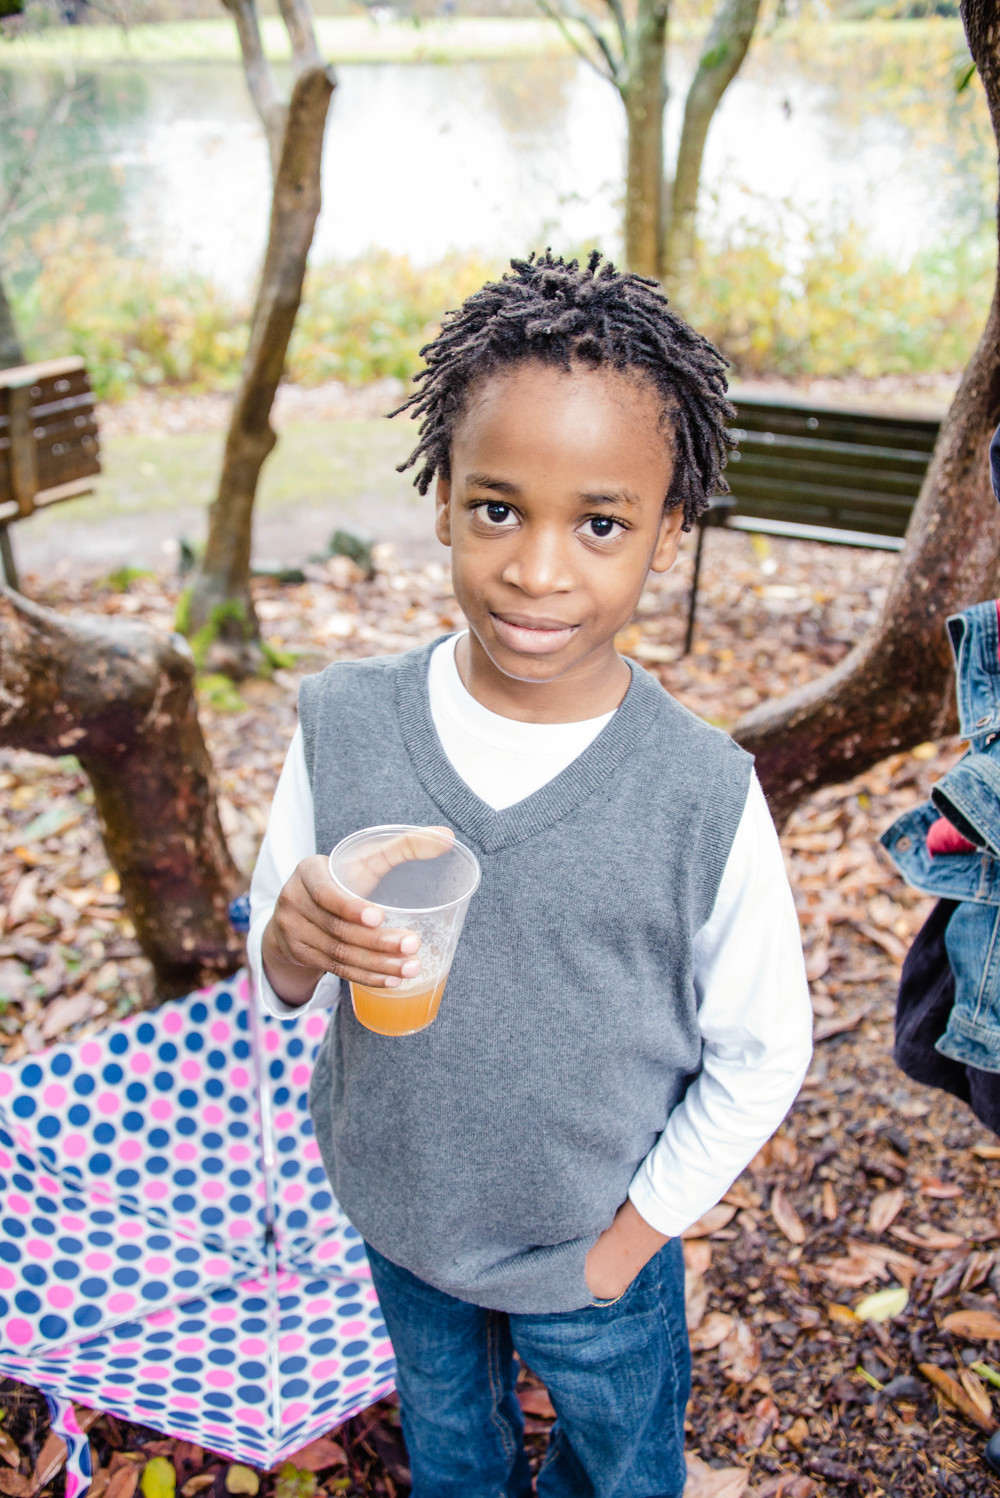 No Fall/Winter Photo Session is complete without hot apple cider. He loved it!